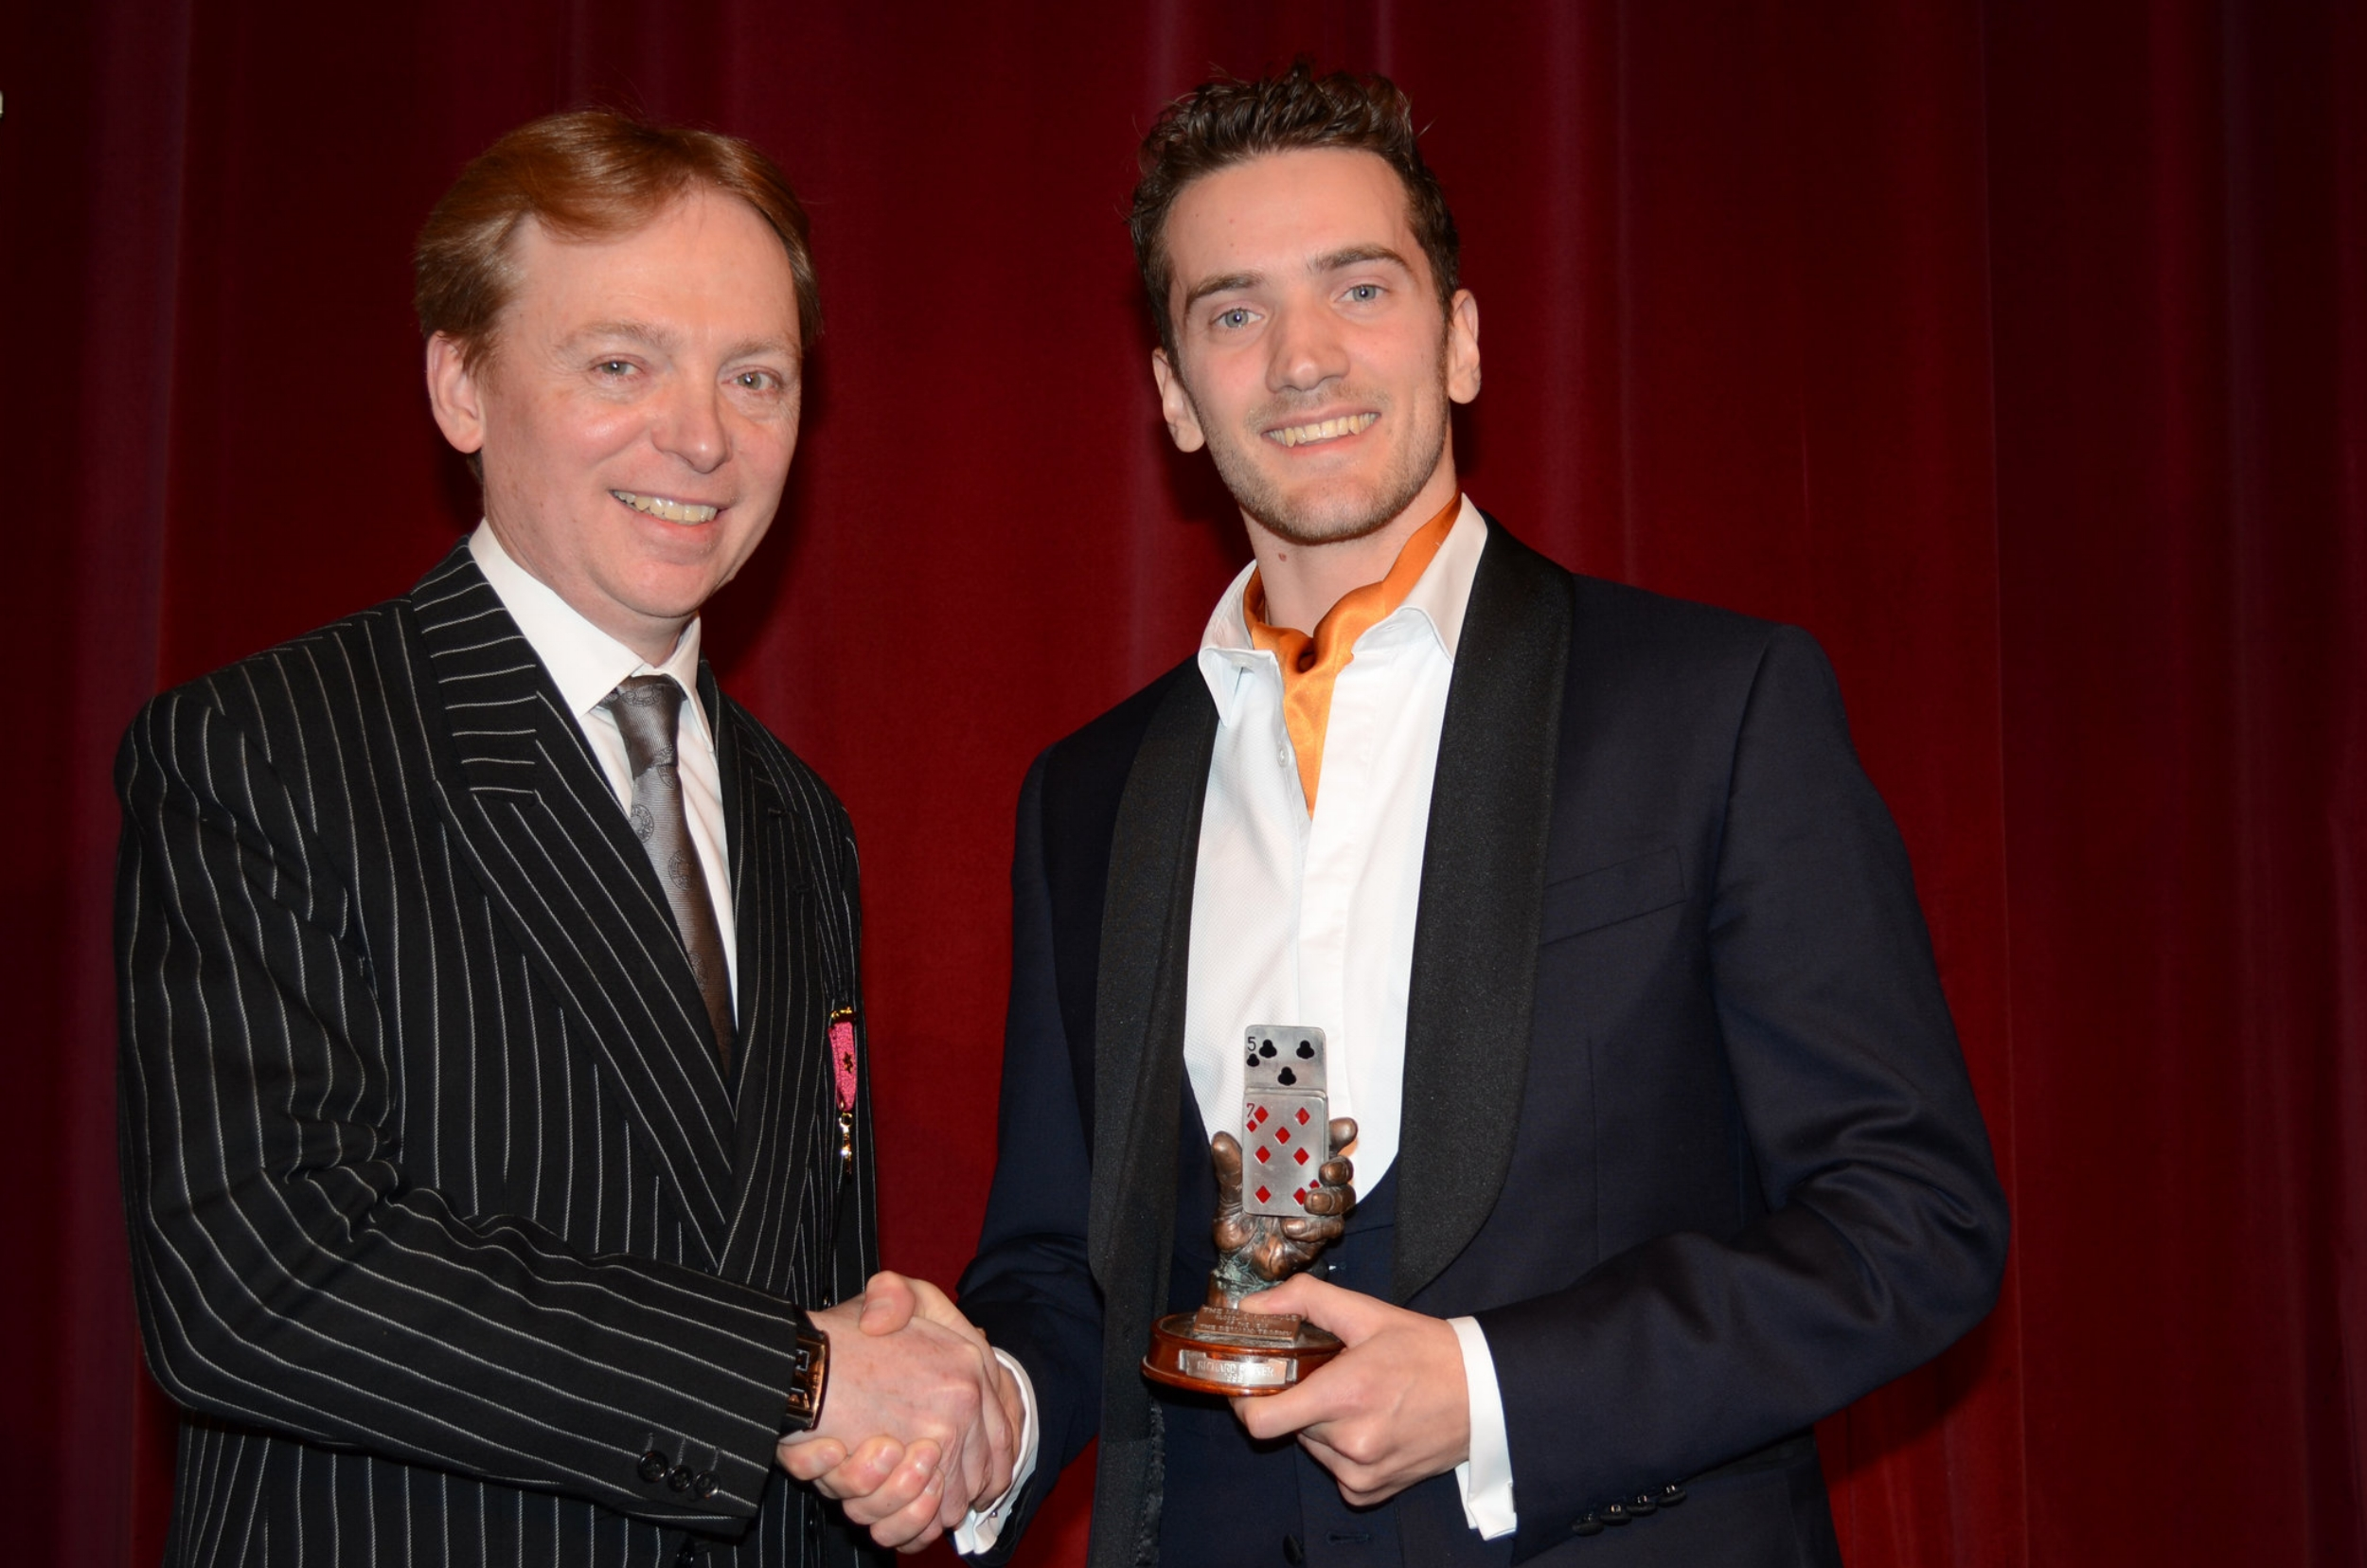 MAKING MAGIC HISTORY - THE MAGIC CIRCLEMatthew is awarded 'The Magic Circle Close-up Magician of The Year 2019' making it his third consecutive year to hold the title given by the worlds most prestigious magic organisation, a record which has never before been broken.